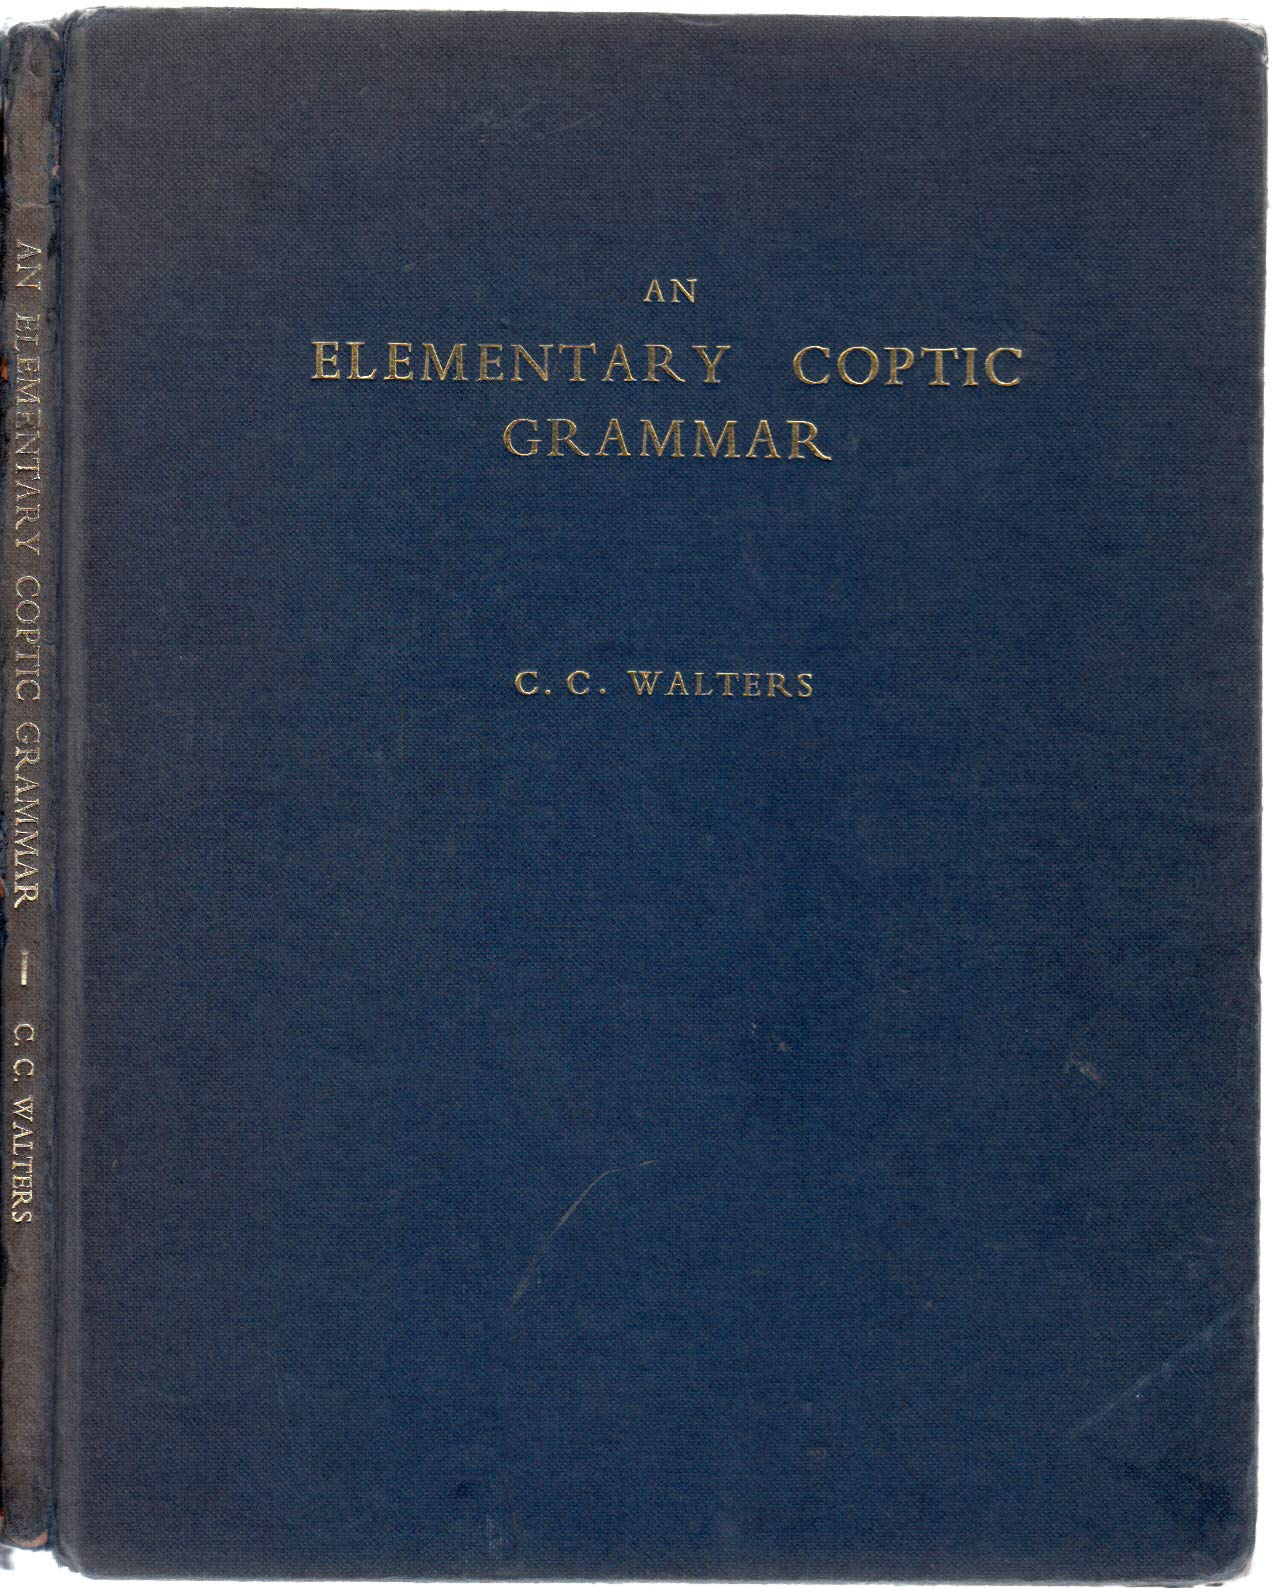 An Elementary Coptic Grammar Of The Sahidic Dialect: C. C. Walters: Amazon.com: Books